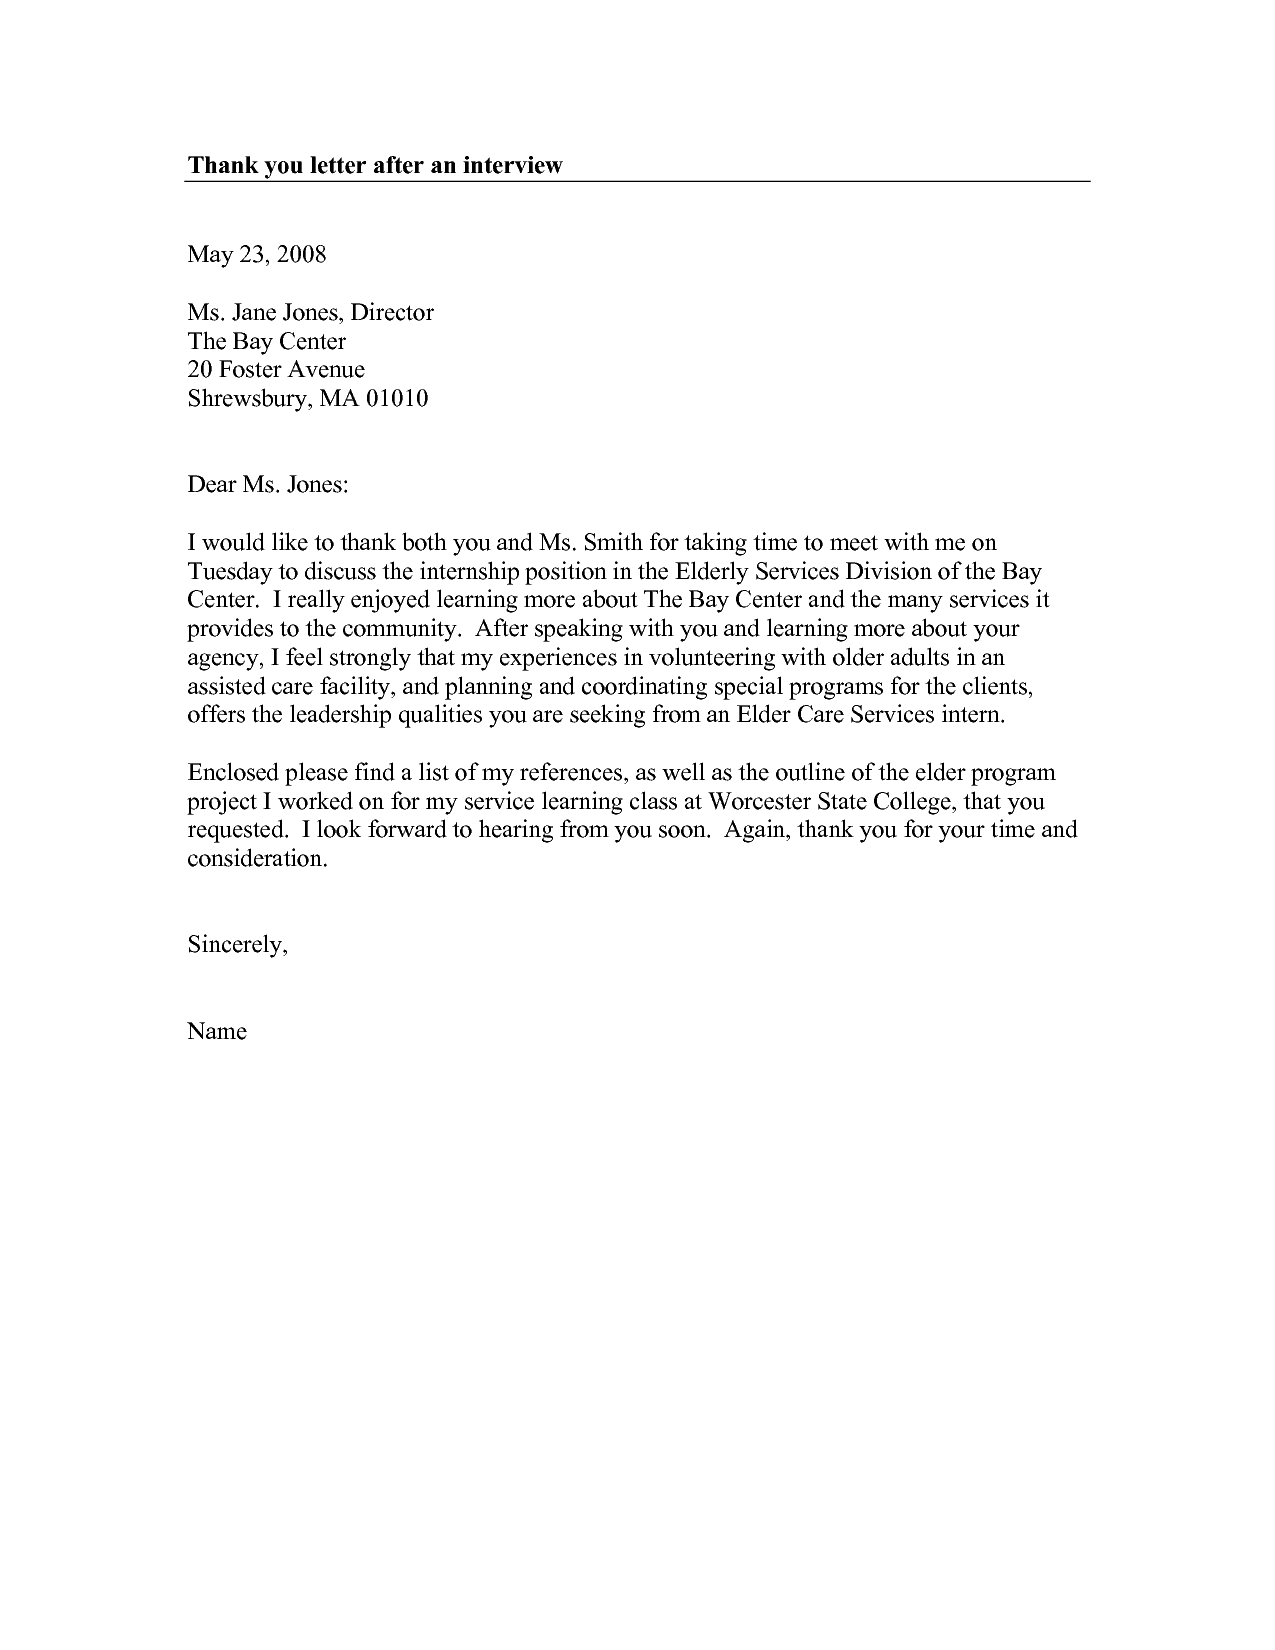 Thank You Letter After Interview Formal Sample Picture  Home